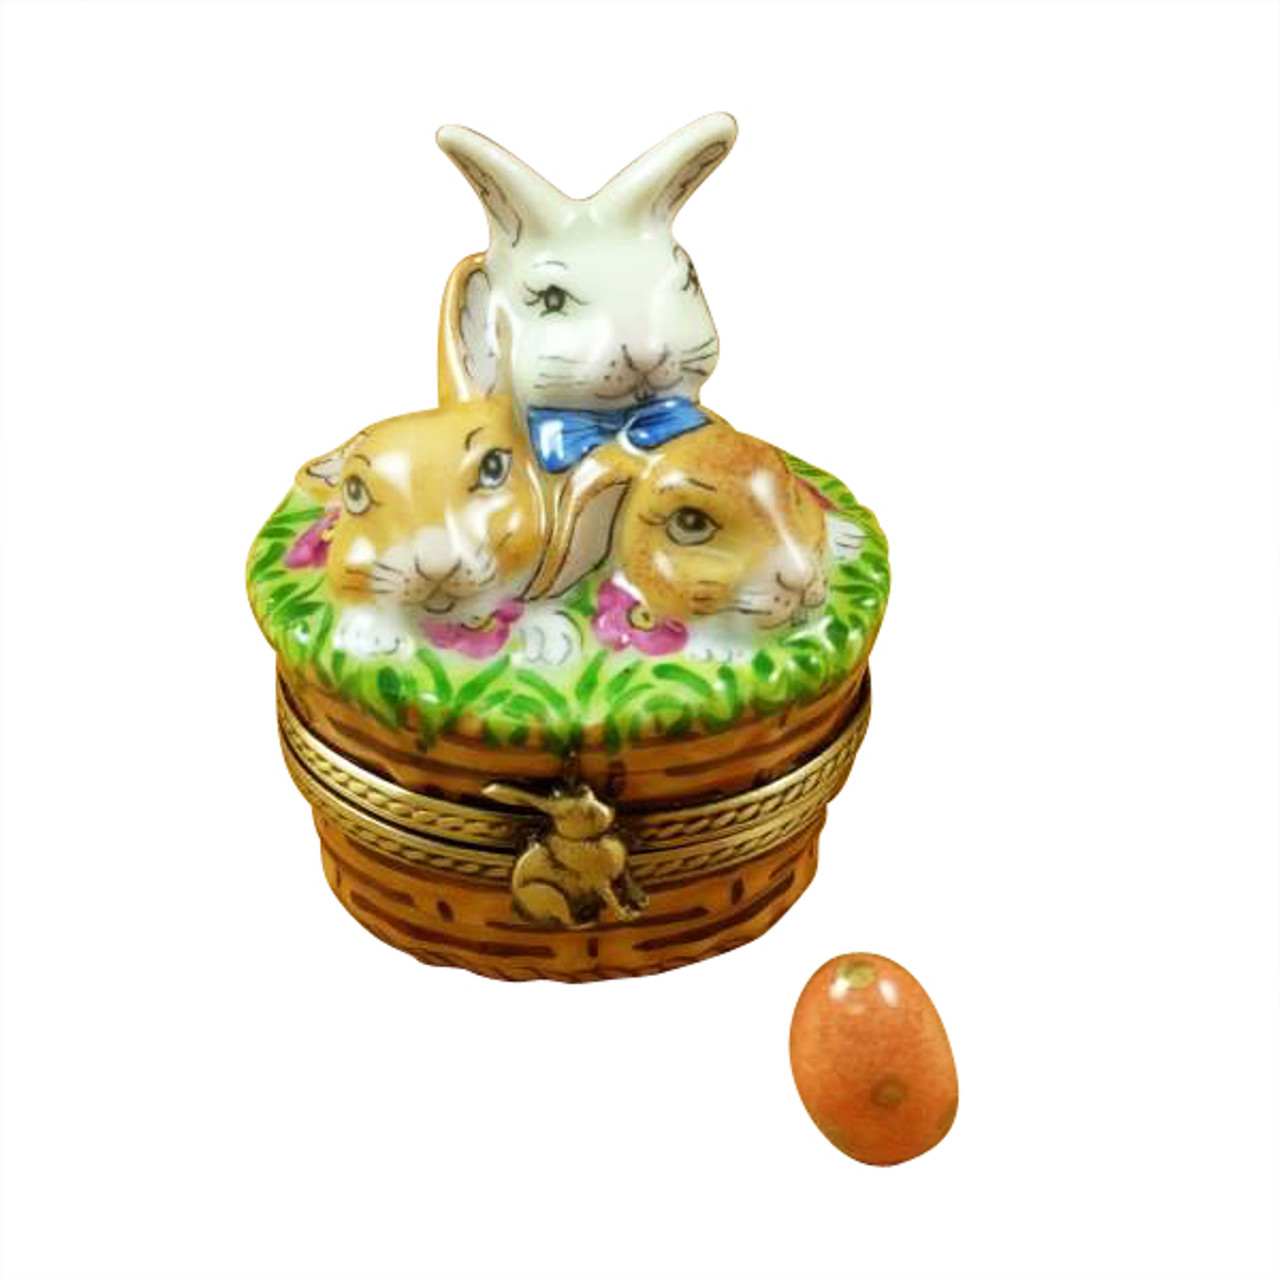 3 RABBITS IN A BASKET Limoges Box RO214-H